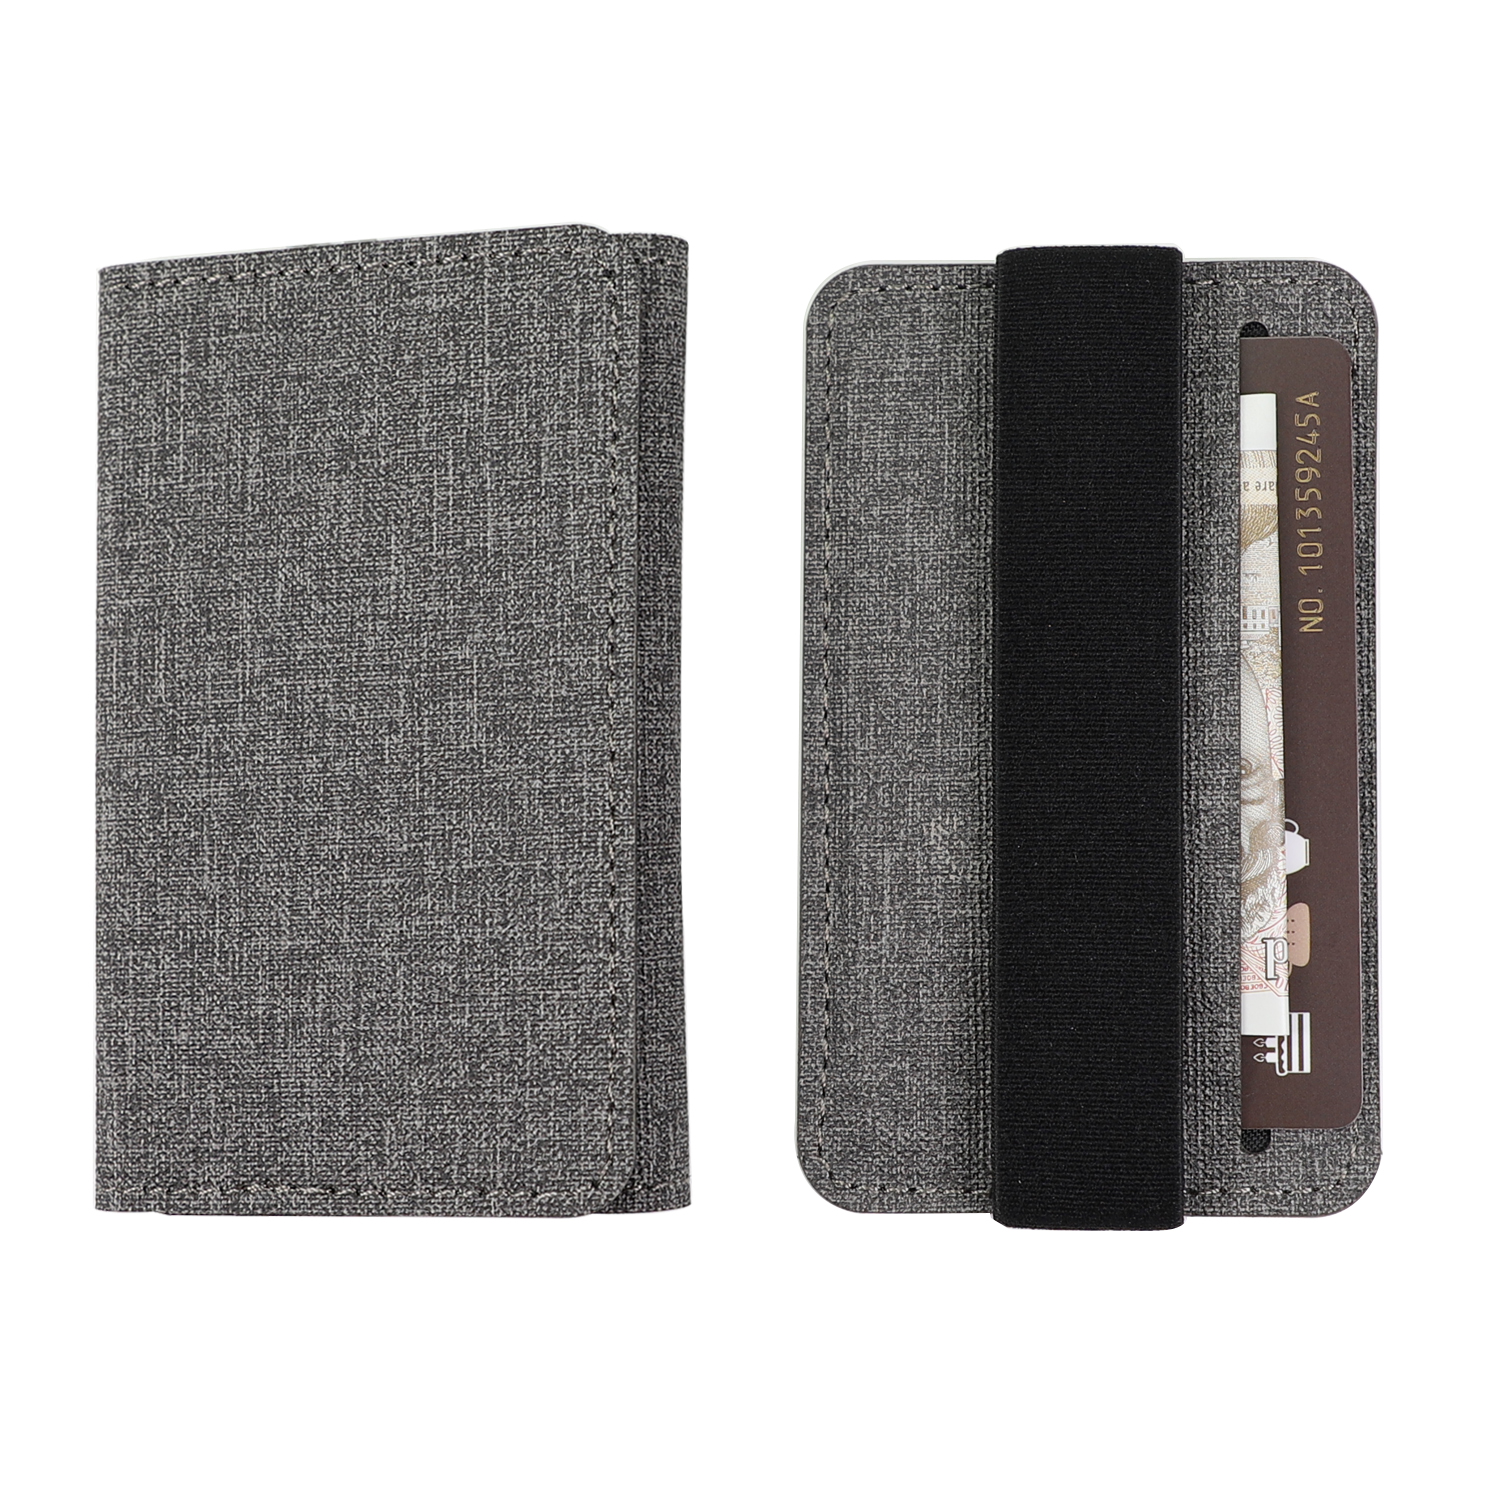 4smarts LAVAVIK Multifunctional Credit Card Holder (grey)